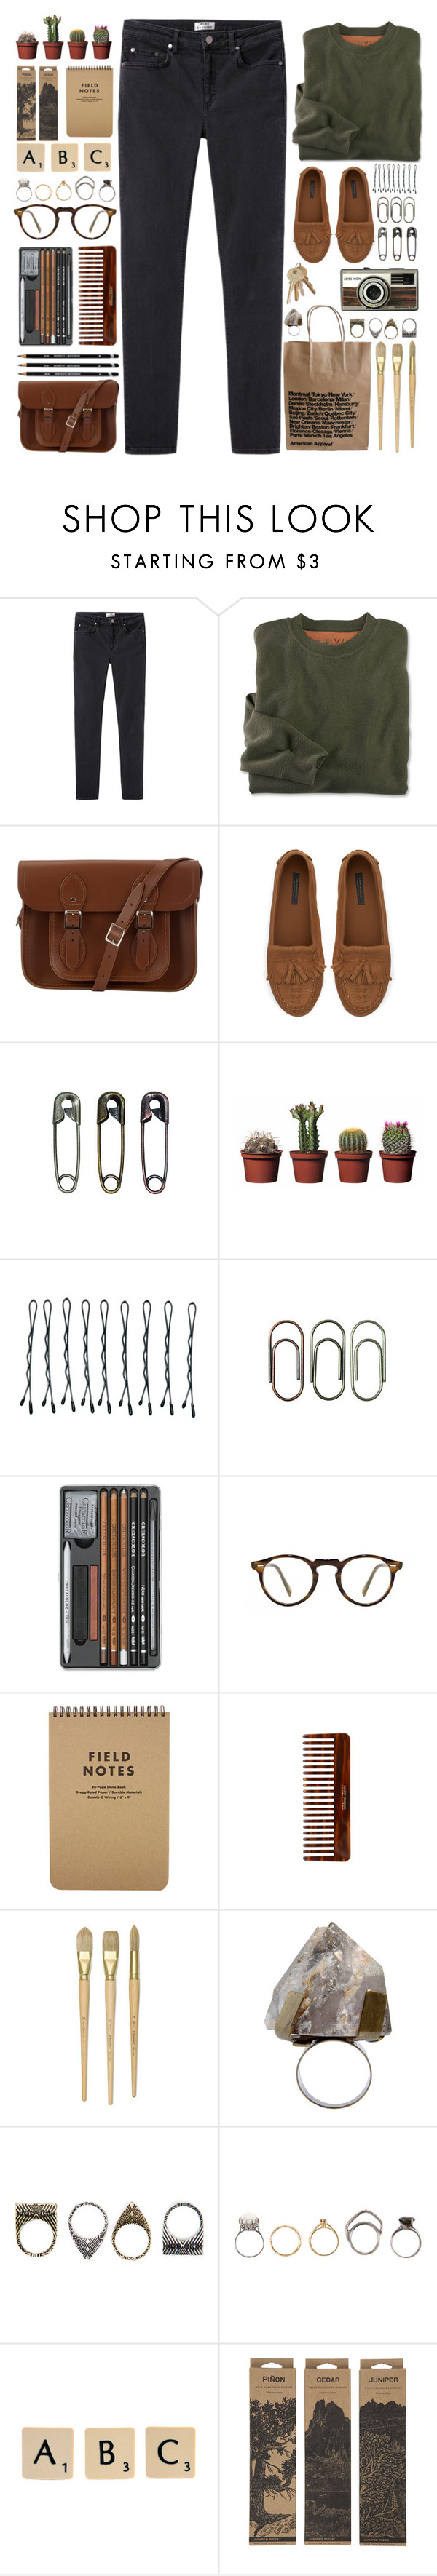 """""""Vaults - Premonitions"""" by annaclaraalvez ❤ liked on Polyvore featuring Acne Studios, The Cambridge Satchel Company, Zara, Tim Holtz, BOBBY, Clips, Oliver Peoples, (MALIN+GOETZ), COSTUME NATIONAL and Pull&Bear"""